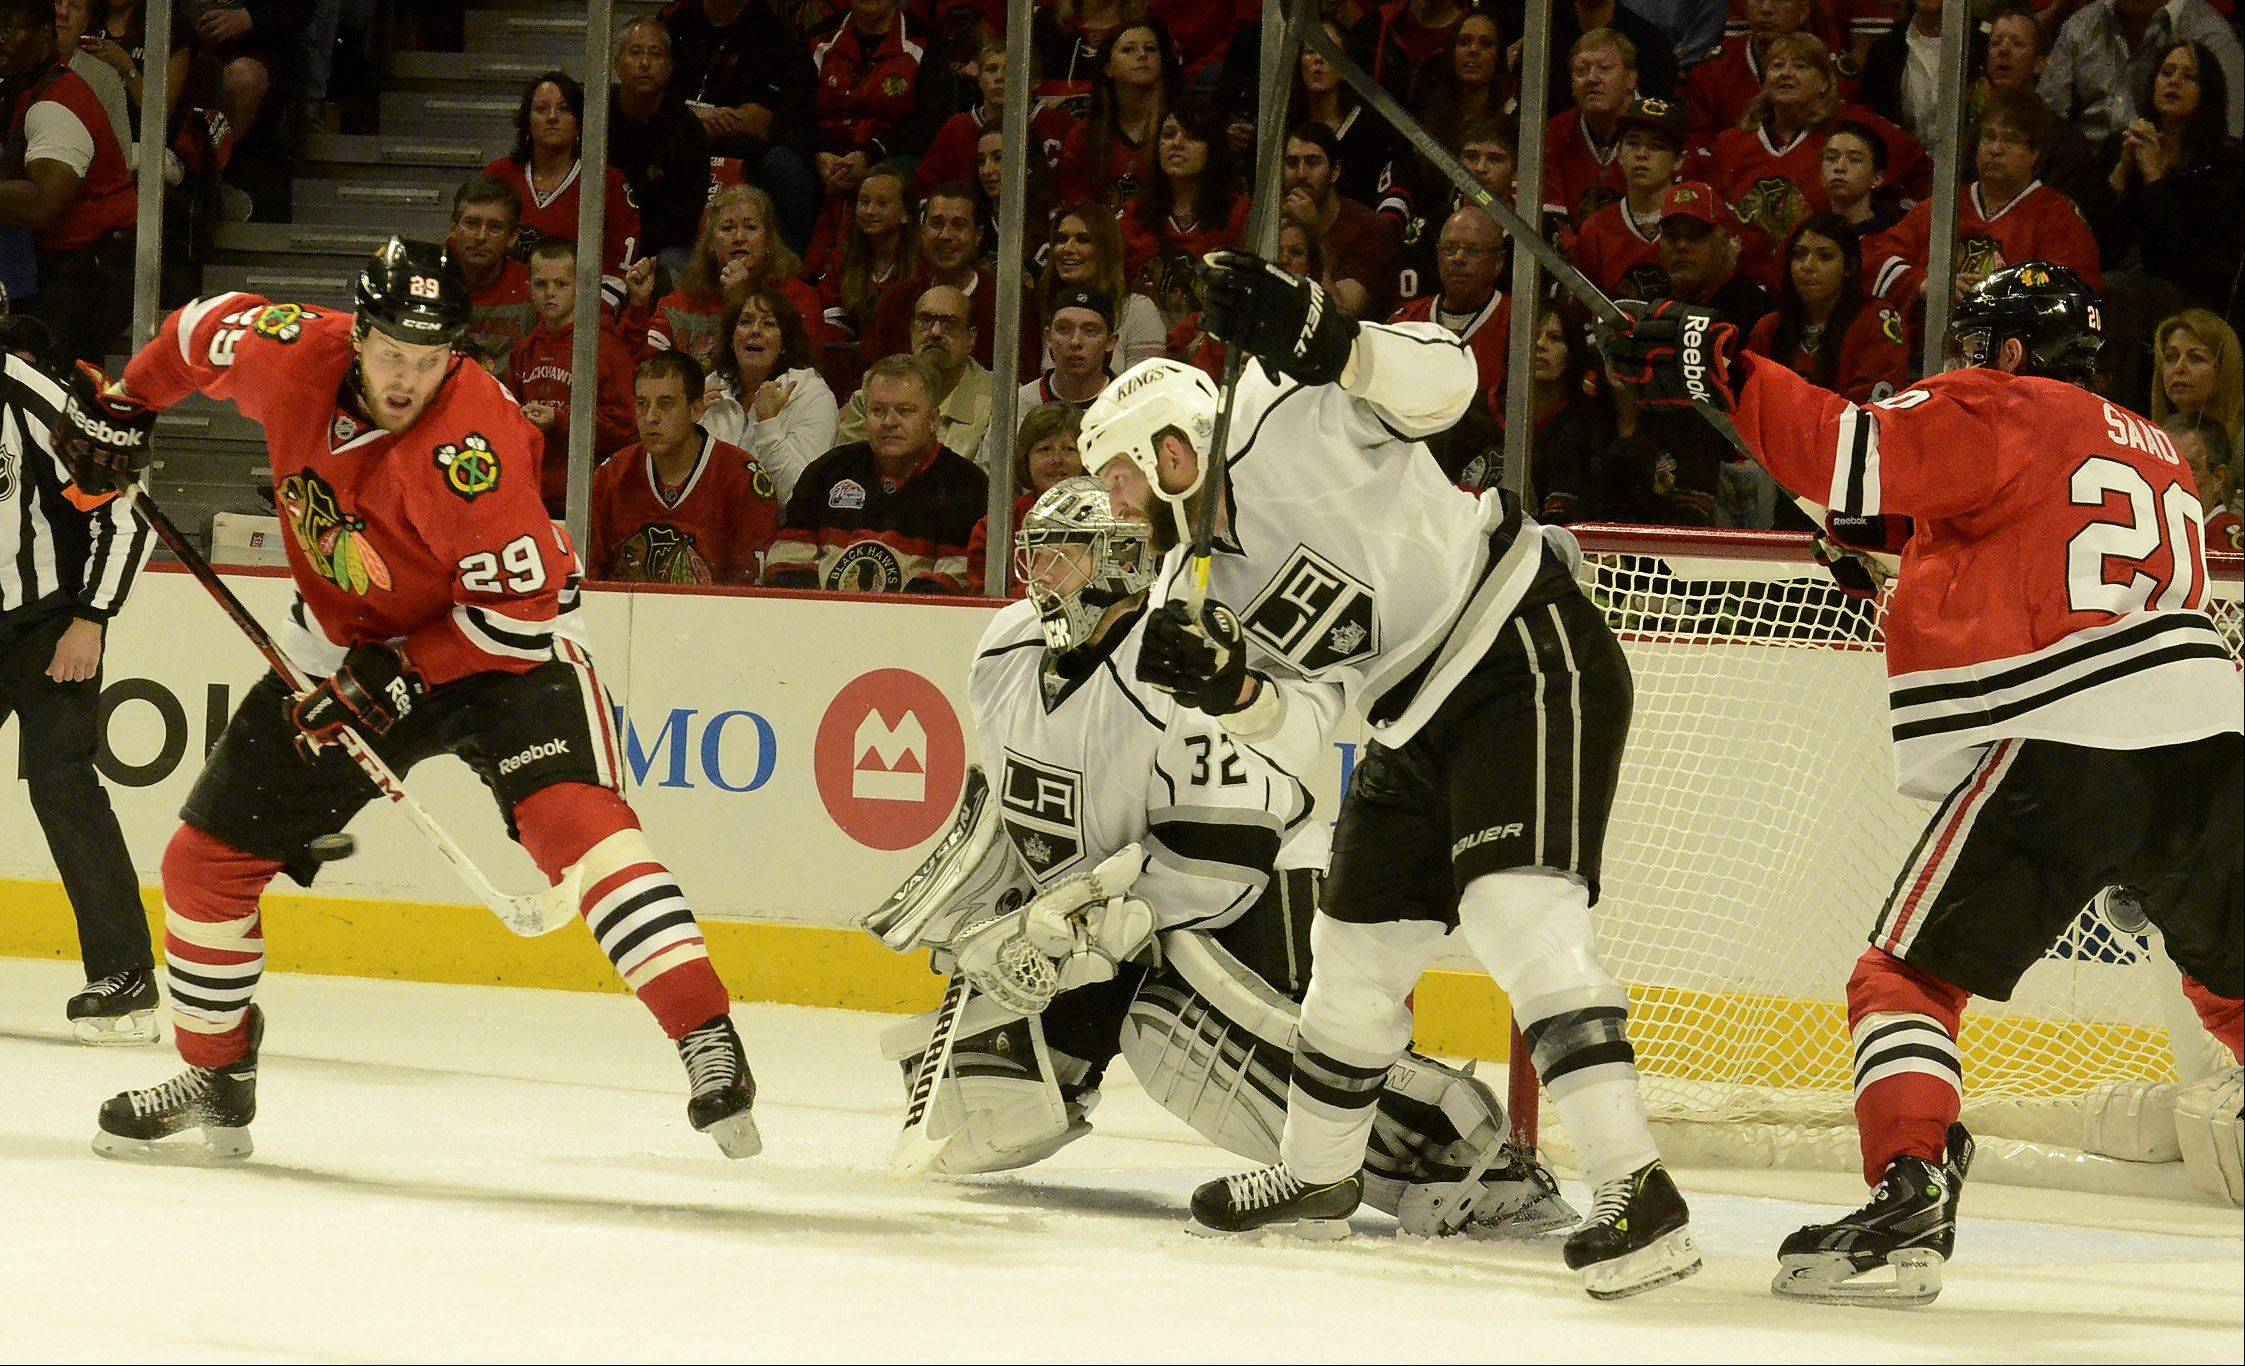 Bryan Bickell and Brandon Saad pressure King's goalie Jonathan Quick in first period action in game 1 of the Western Conference finals between the Chicago Blackhawks and the Los Angeles Kings.